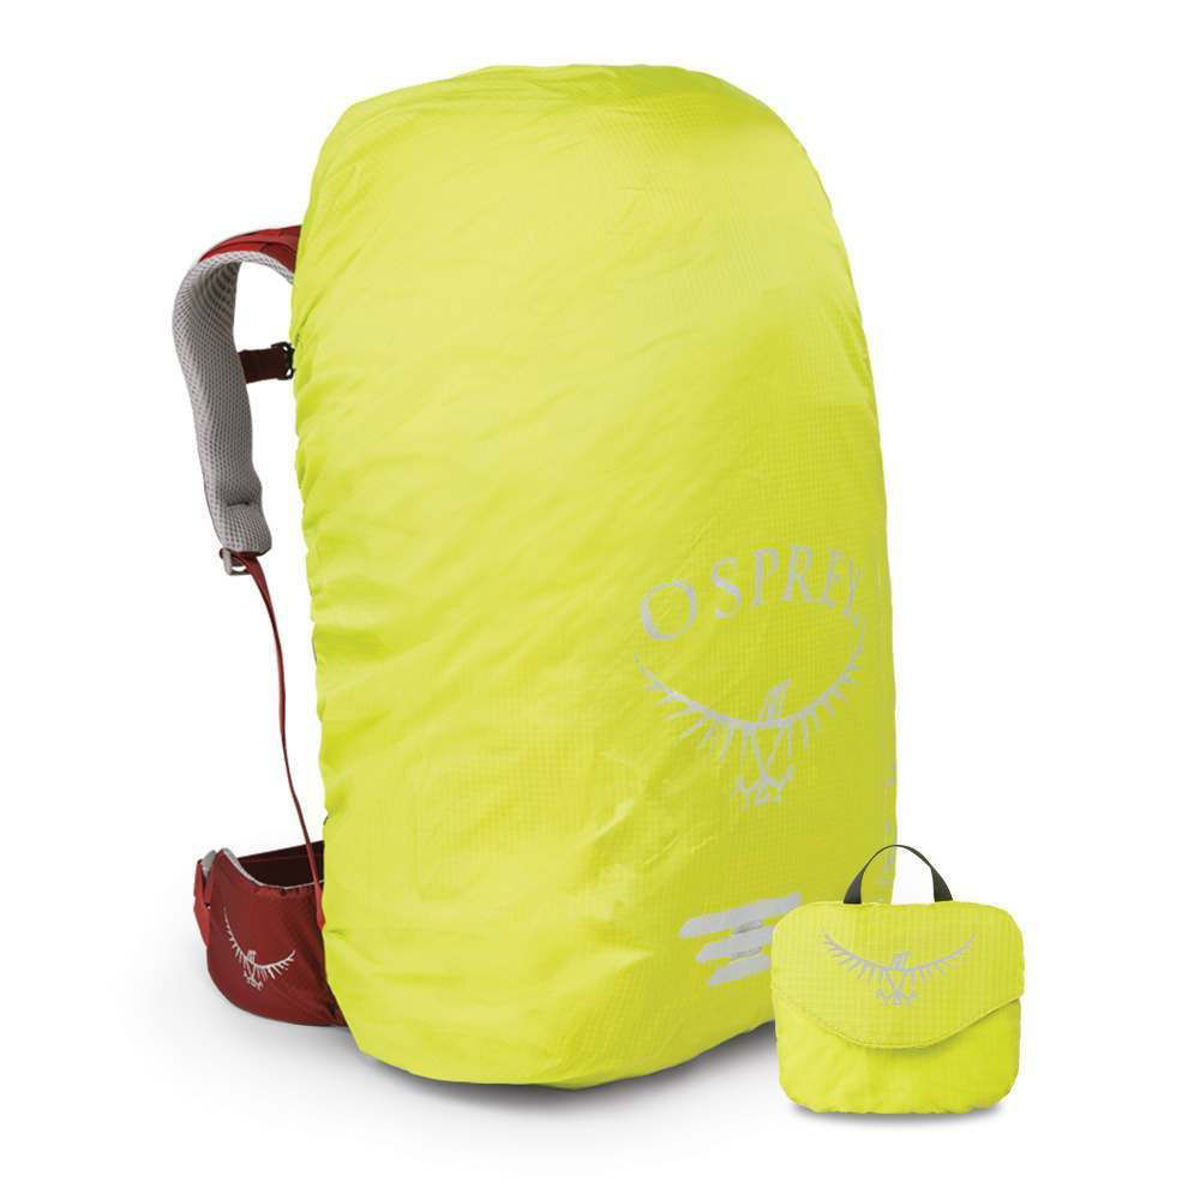 Bilde av Ultralight High Vis Raincover